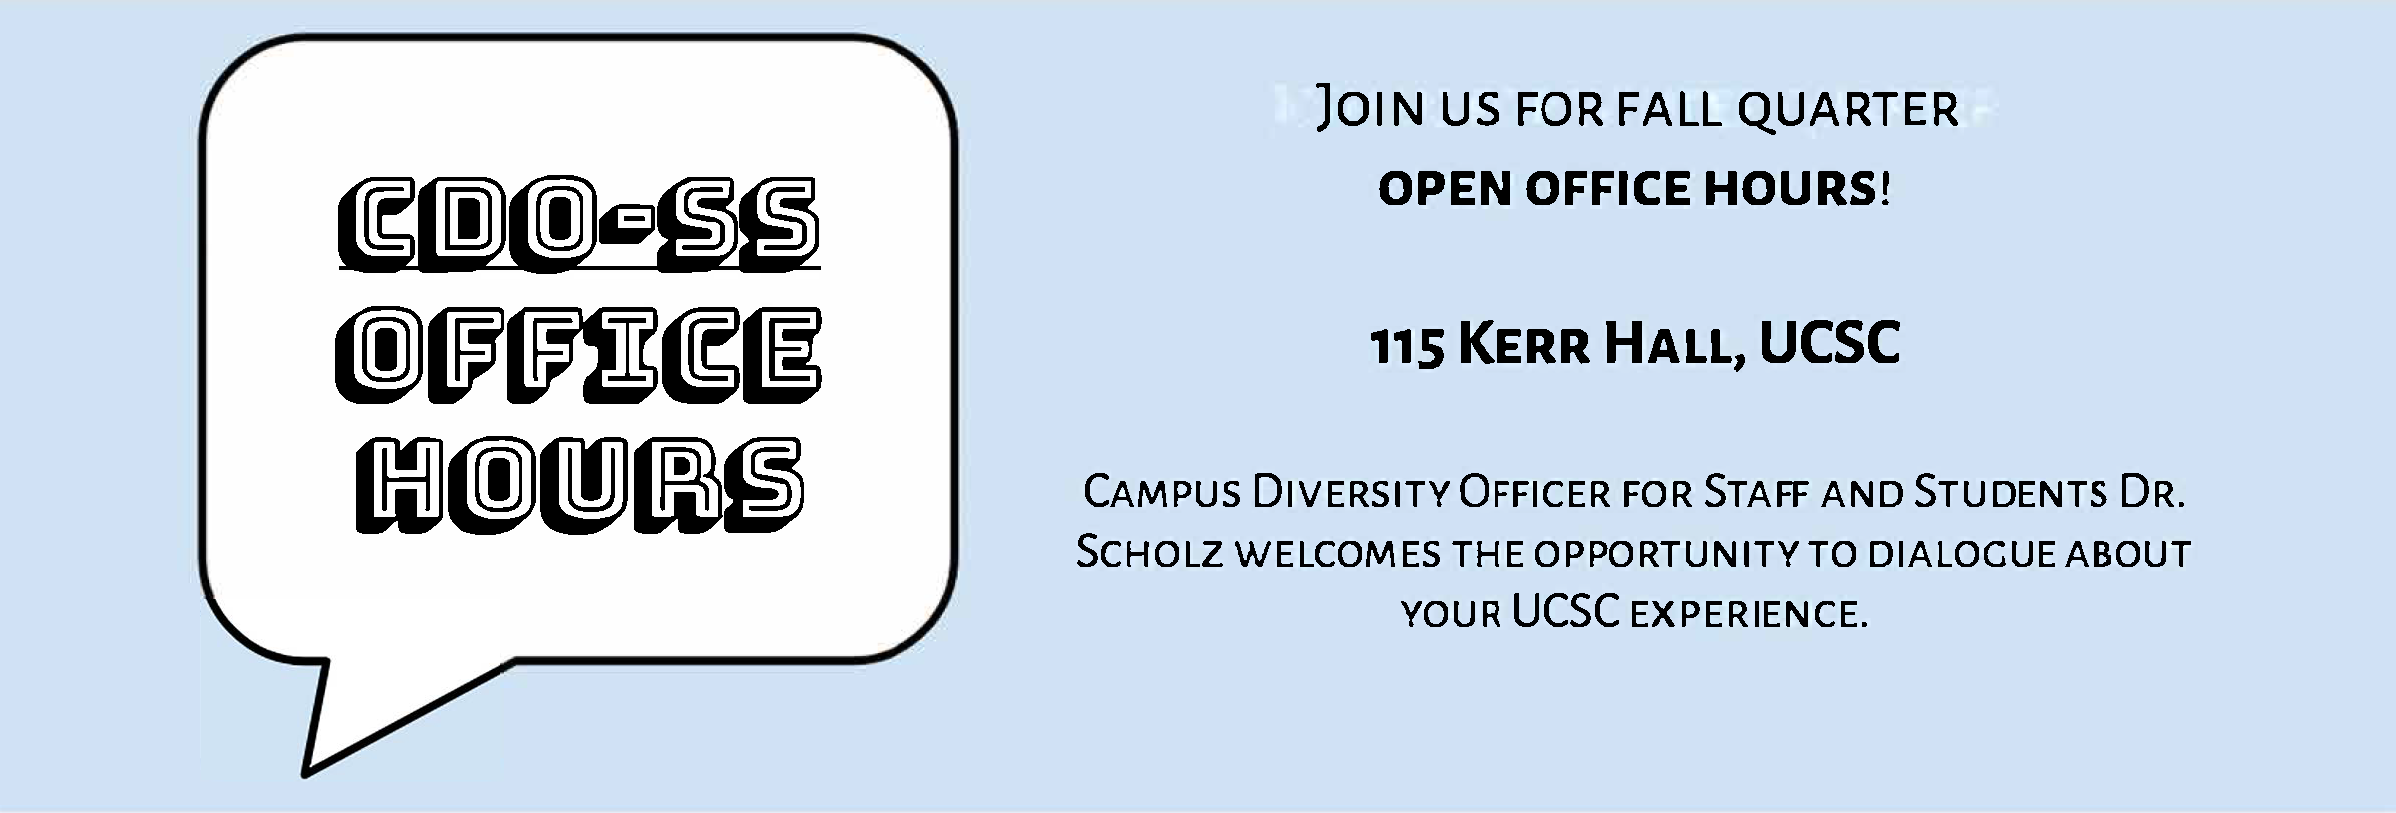 Join us for open office hours!  115 Kerr Hall, UCSC  - Campus Diversity Officer for Staff and Students Dr. Scholz welcomes the opportunity to dialogue about your UCSC experience.